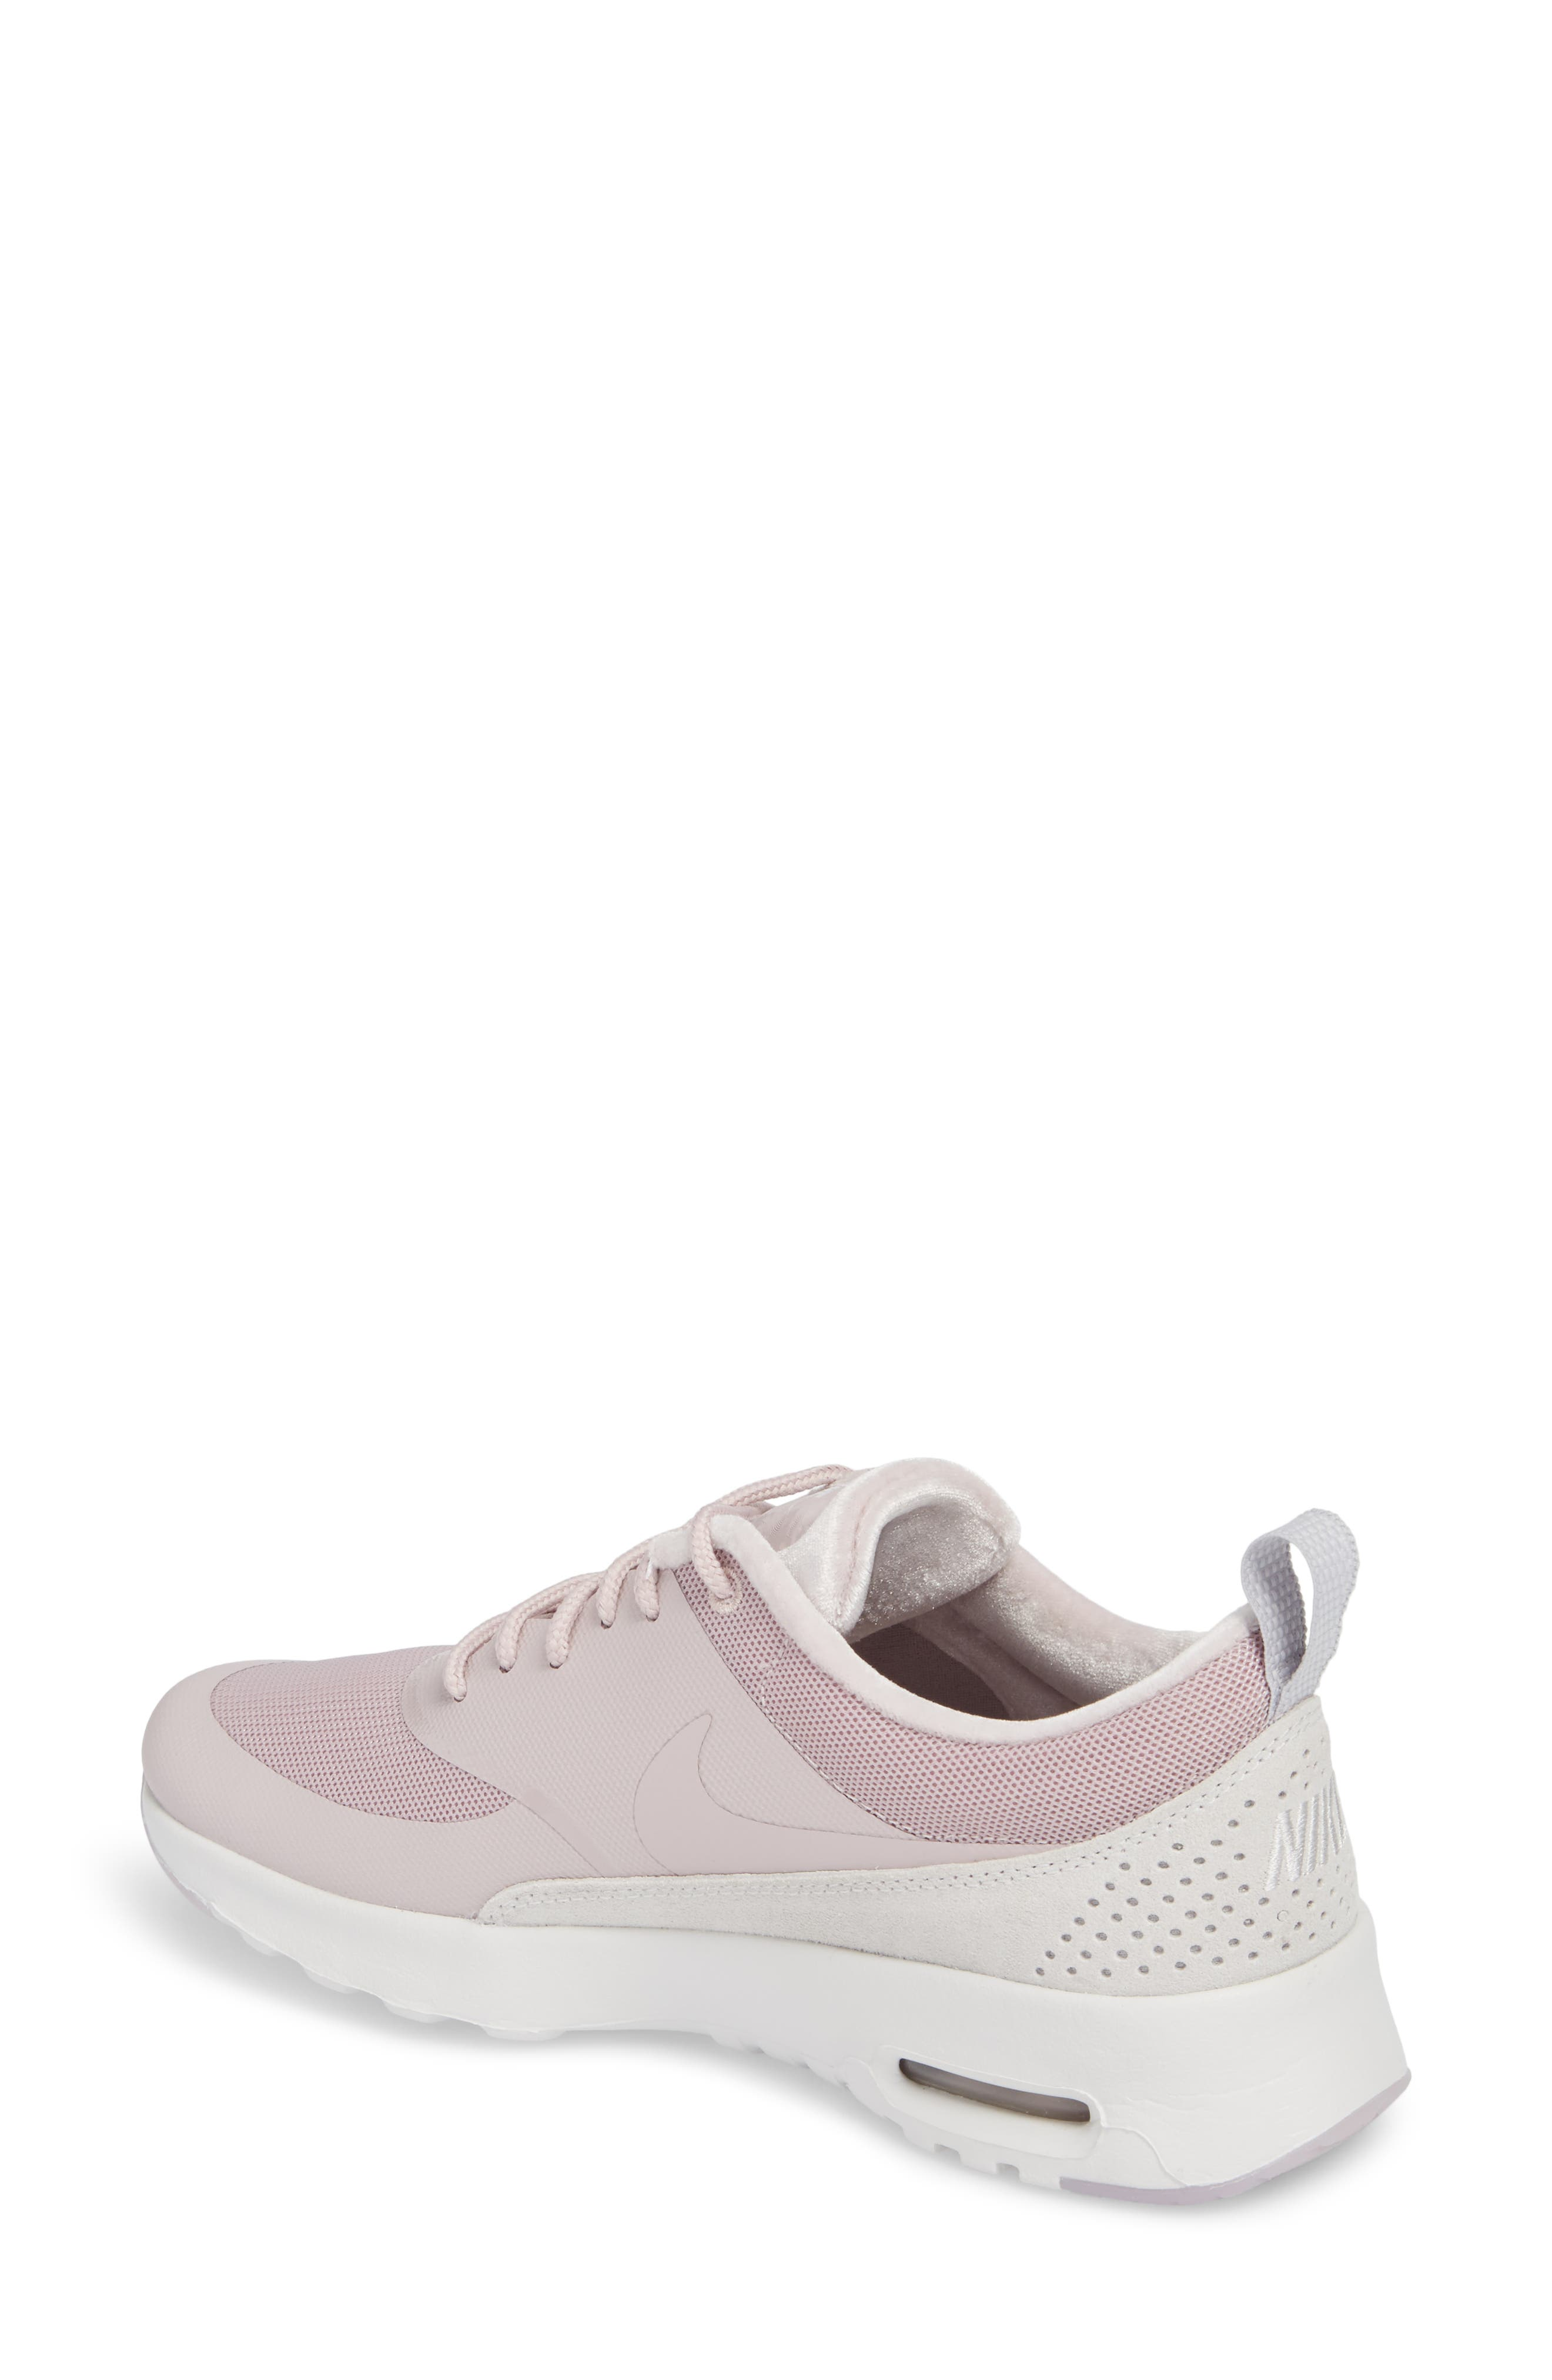 Air Max Thea LX Sneaker,                             Alternate thumbnail 2, color,                             Particle Rose/ Particle Rose